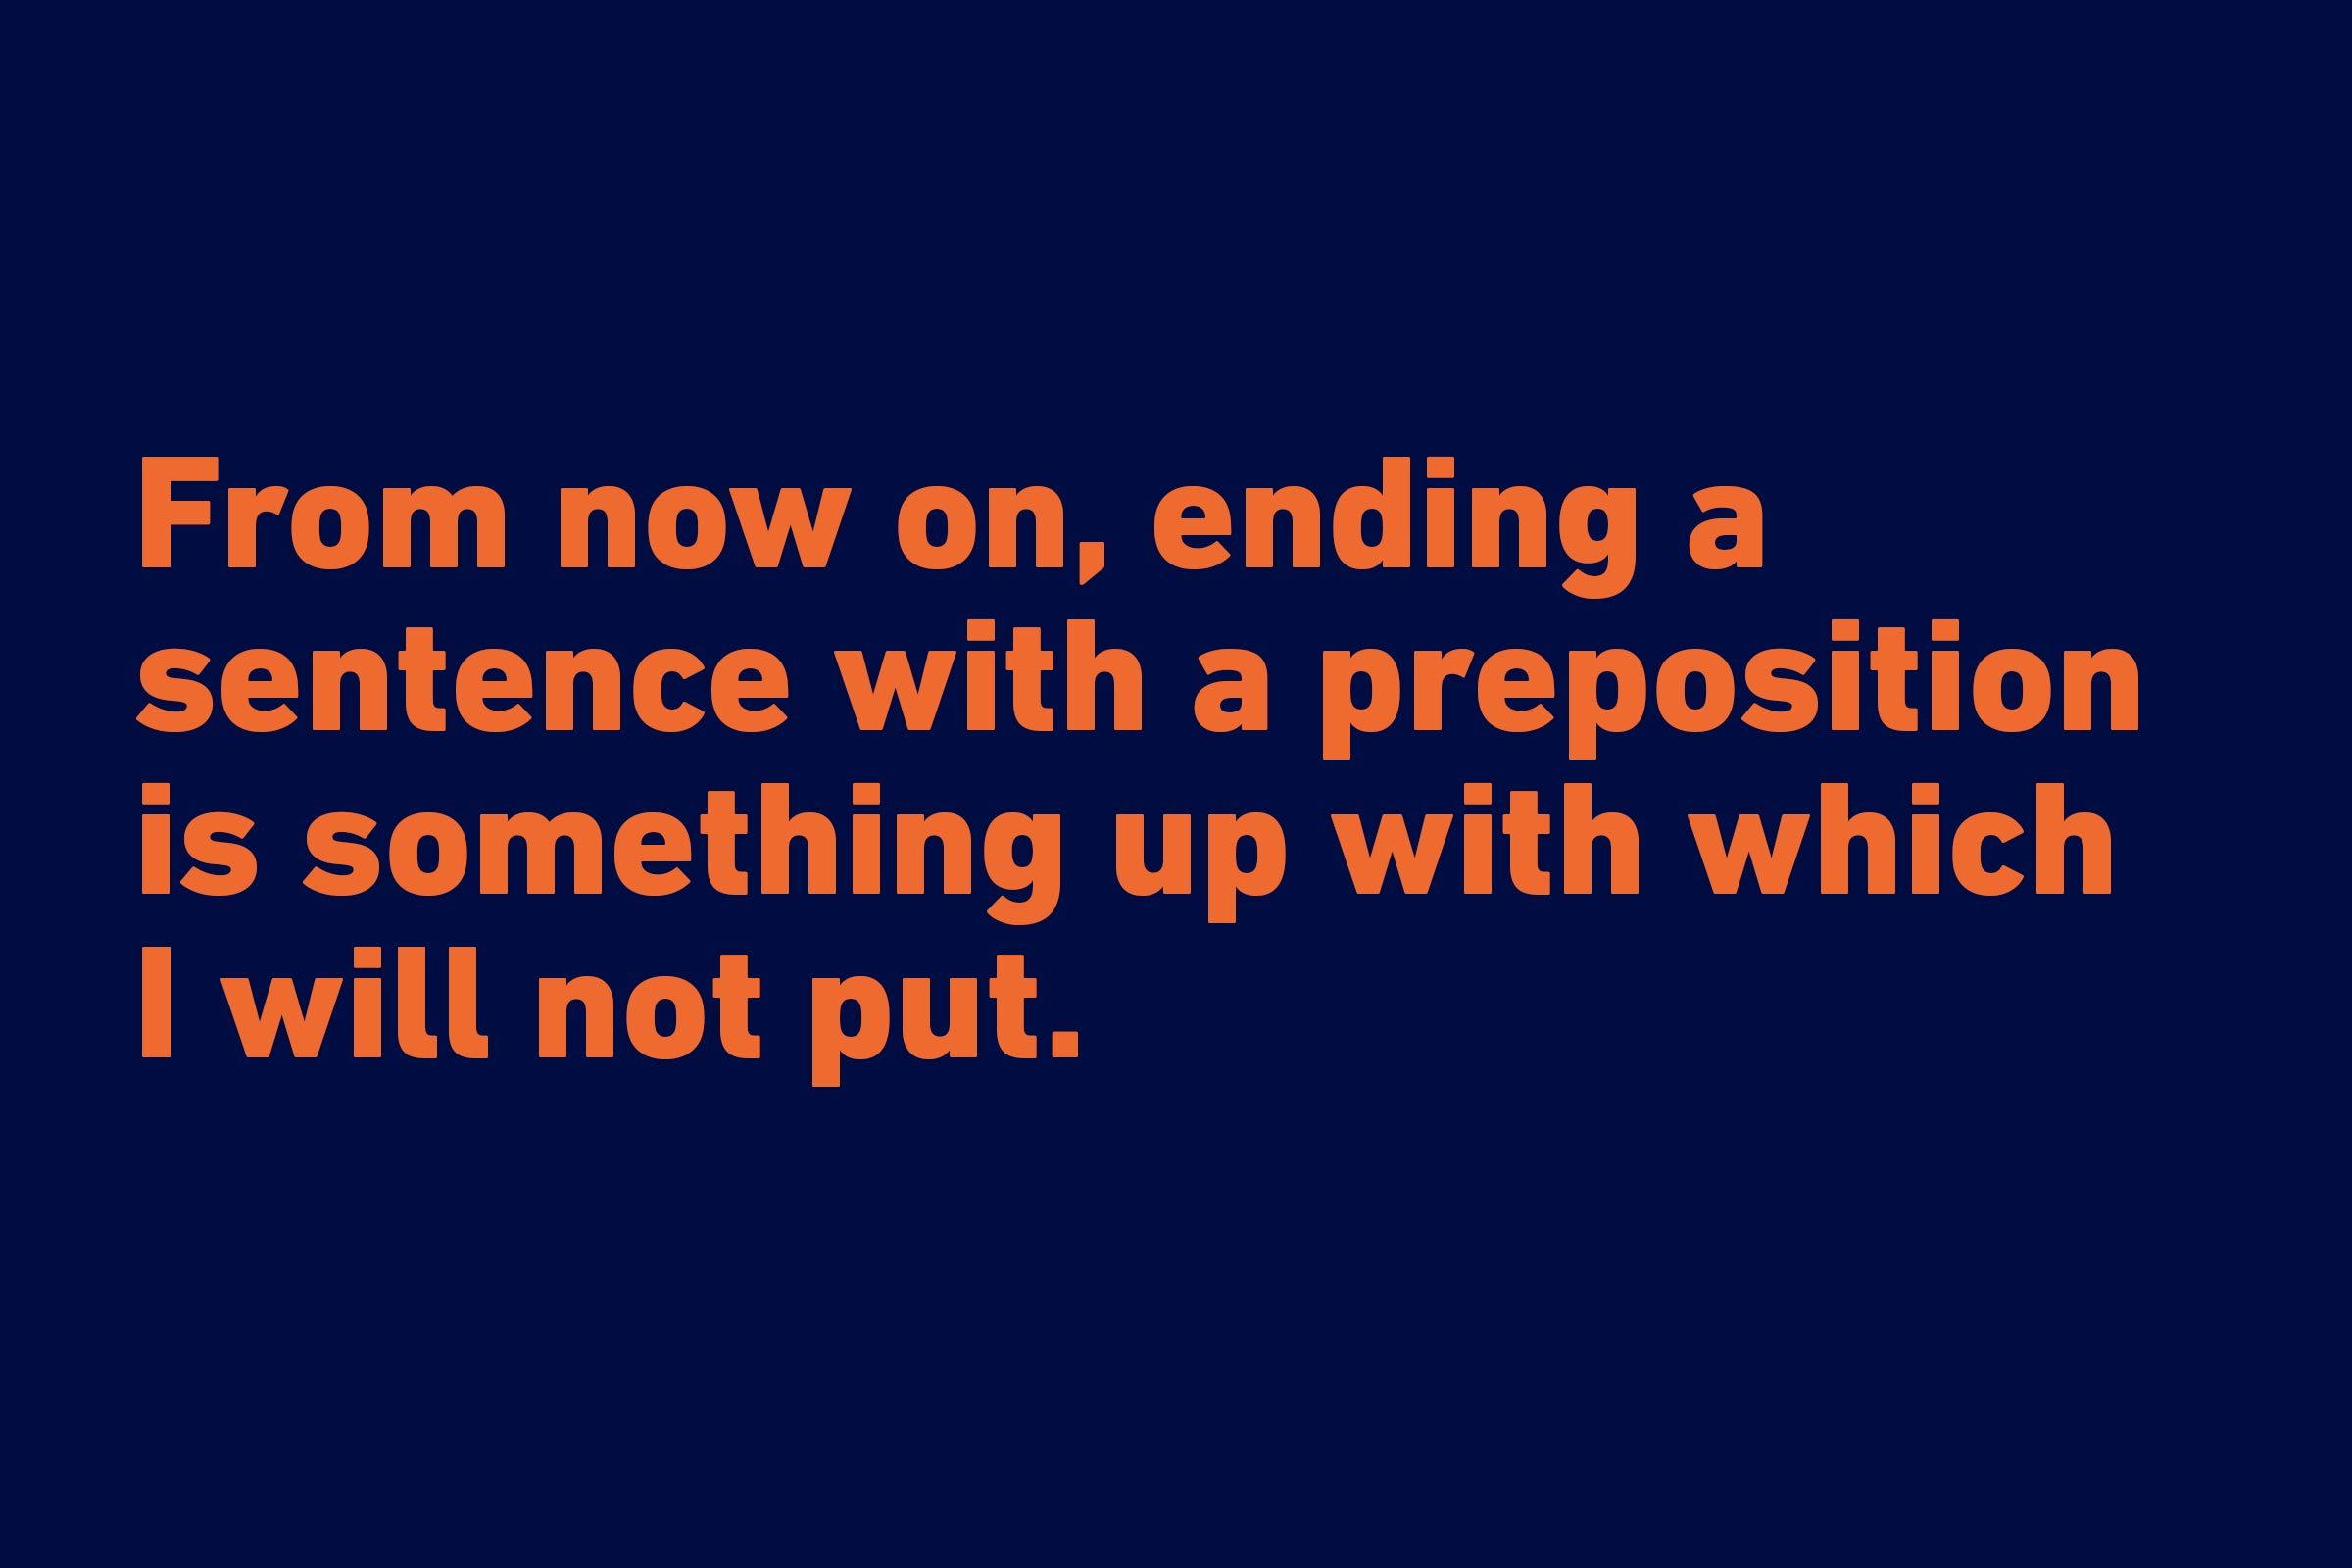 """From now on, ending a sentence with a preposition is something up with which I will not put."" —Winston Churchill"